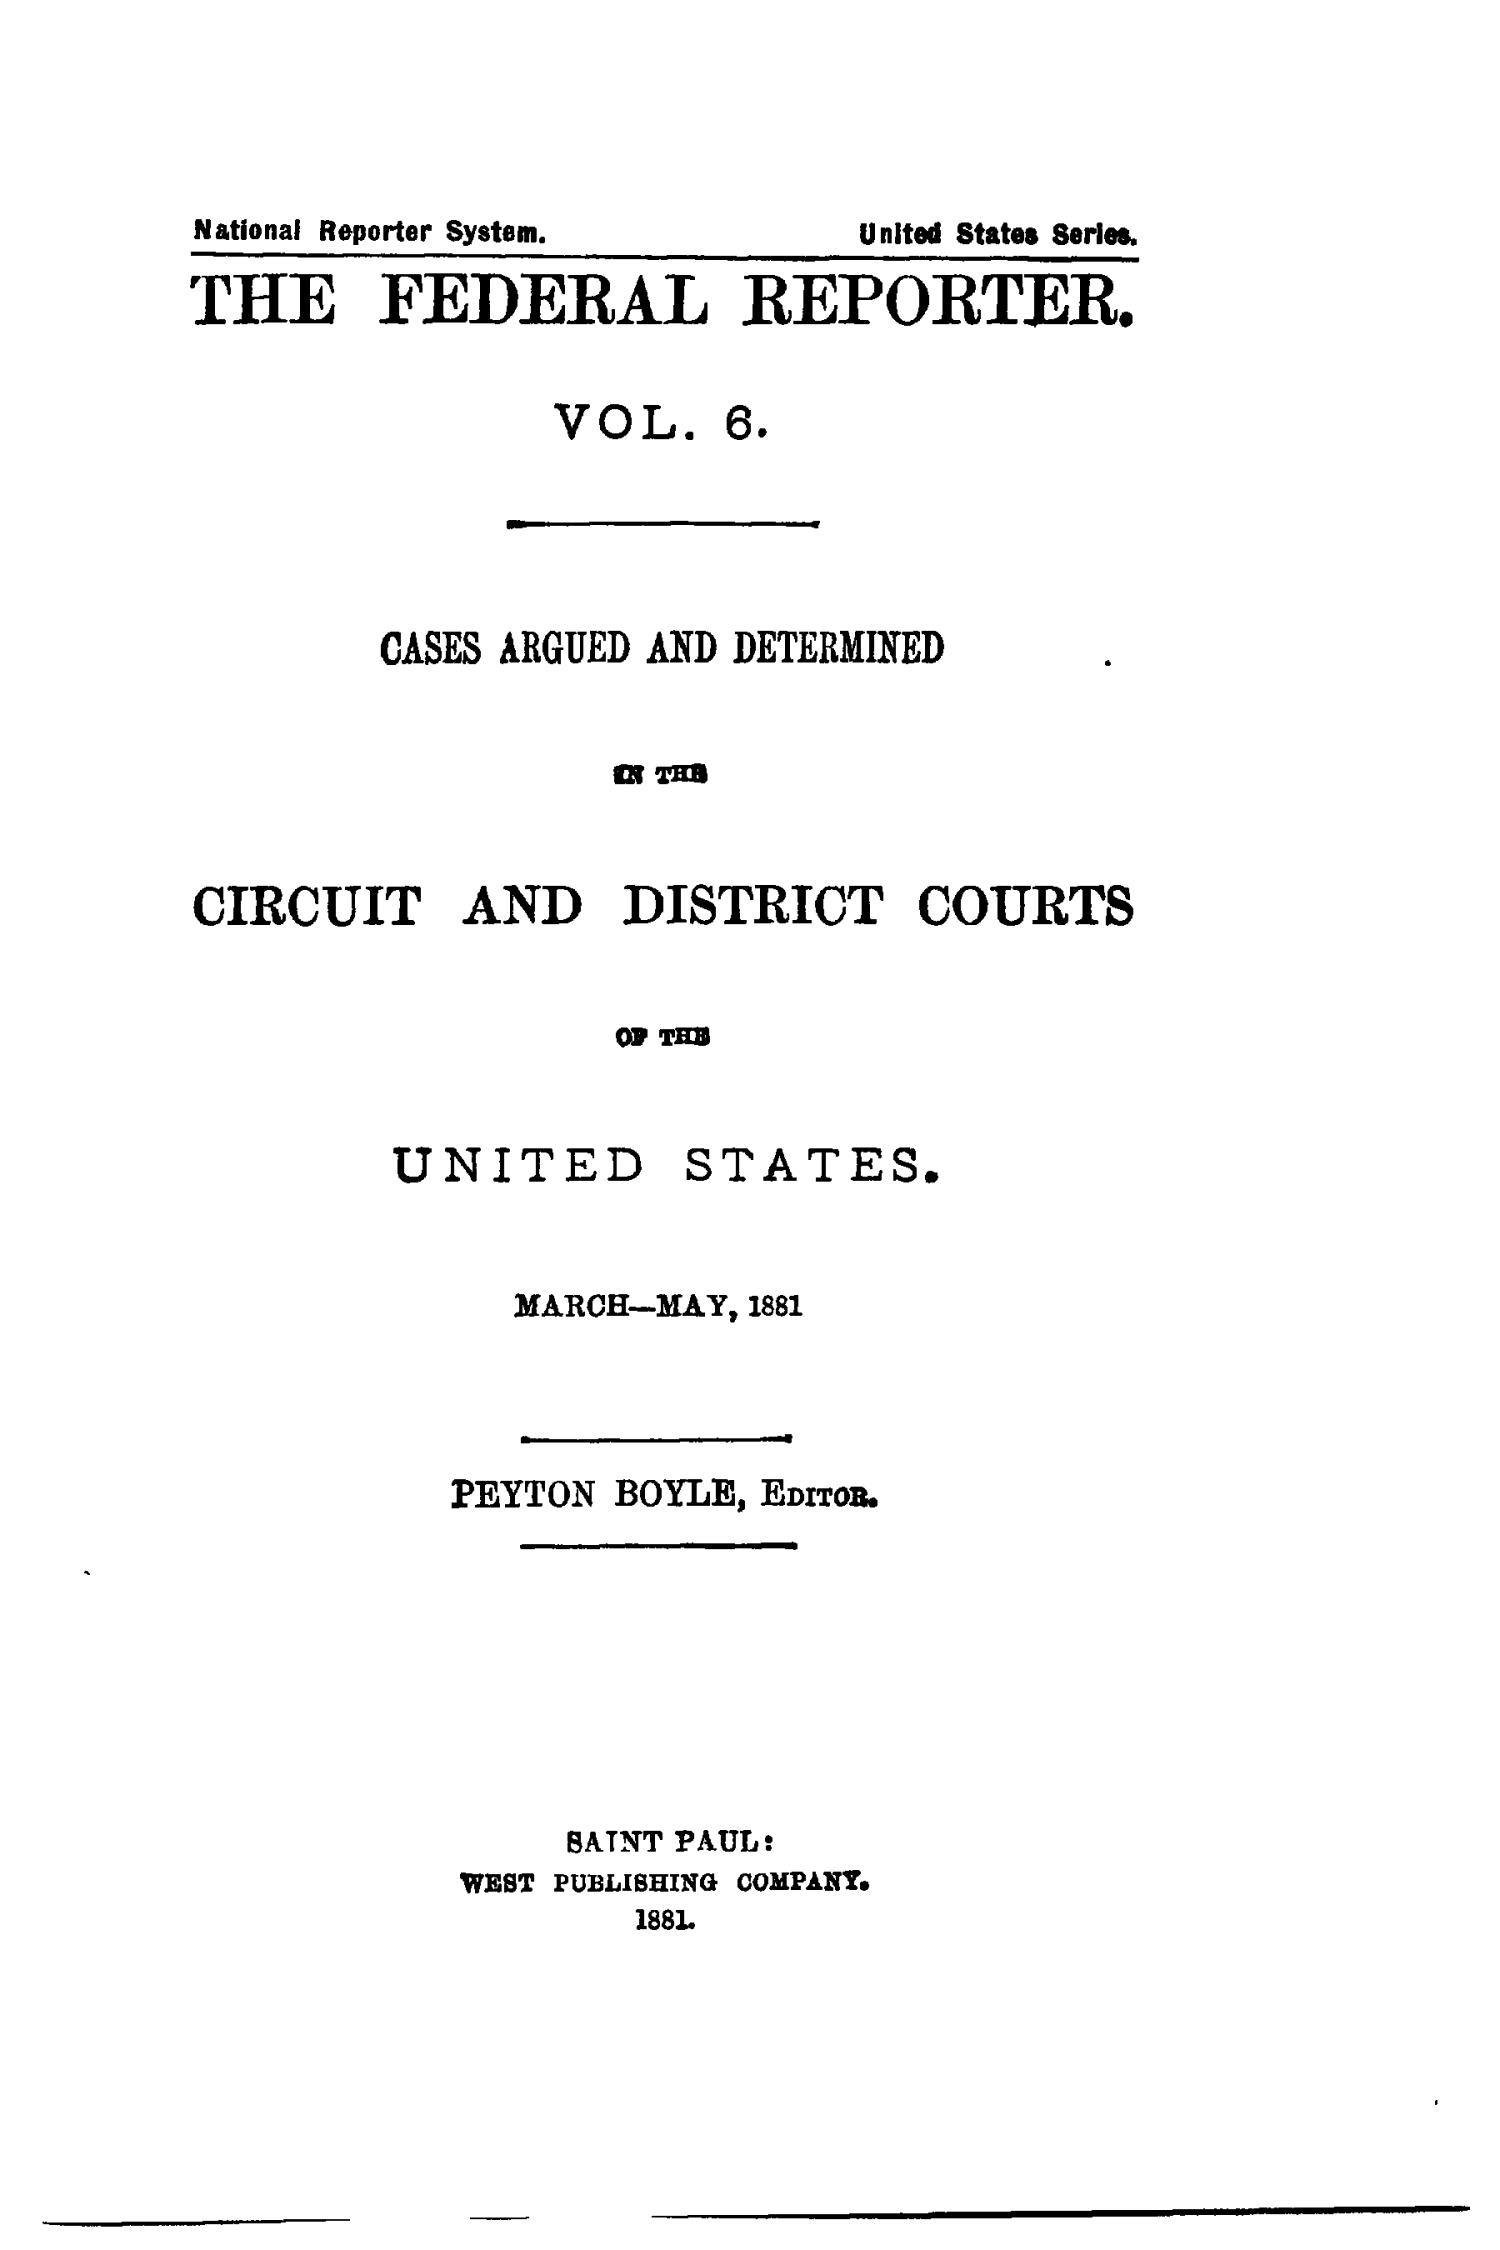 The Federal Reporter. Volume 6: Cases Argued and Determined in the Circuit and District Courts of the United States. March-May, 1881.                                                                                                      Title Page